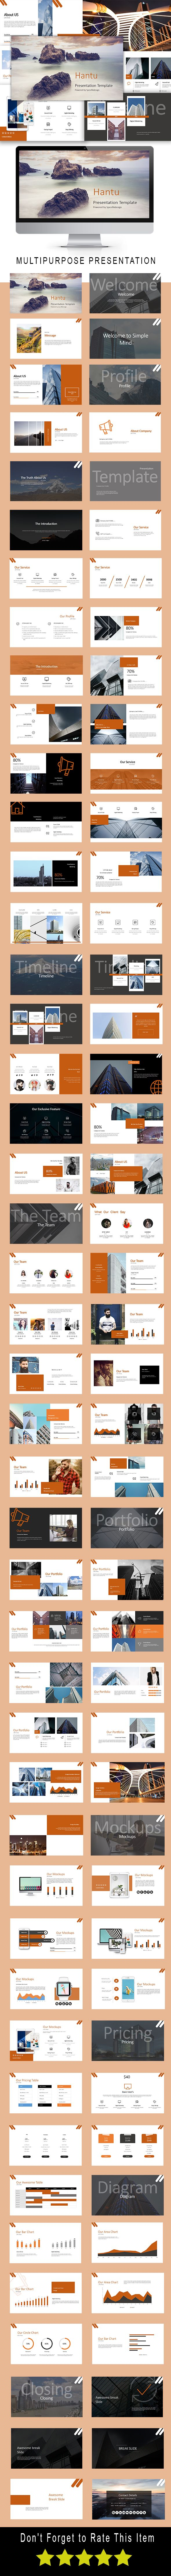 Hantu Multipurpose Powerpoint Template - PowerPoint Templates Presentation Templates Download here: https://graphicriver.net/item/hantu-multipurpose-powerpoint-template/19802455?ref=classicdesignp